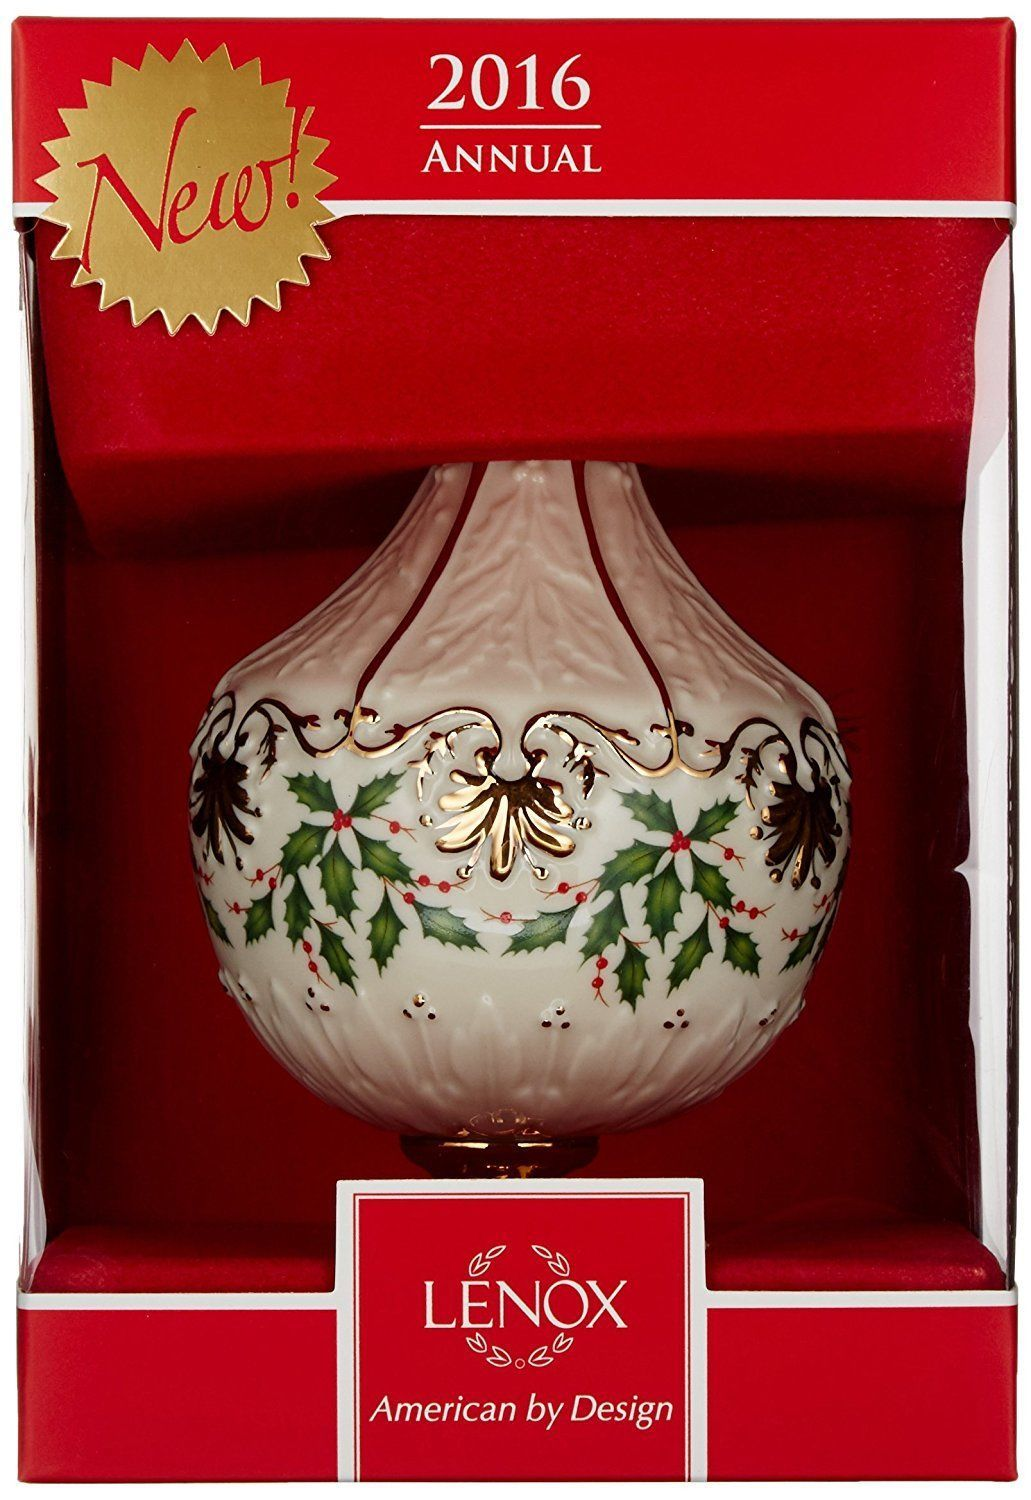 Lenox Christmas 2016 Holiday Ornament Annual Holly Berry Motif NEW IN BOX